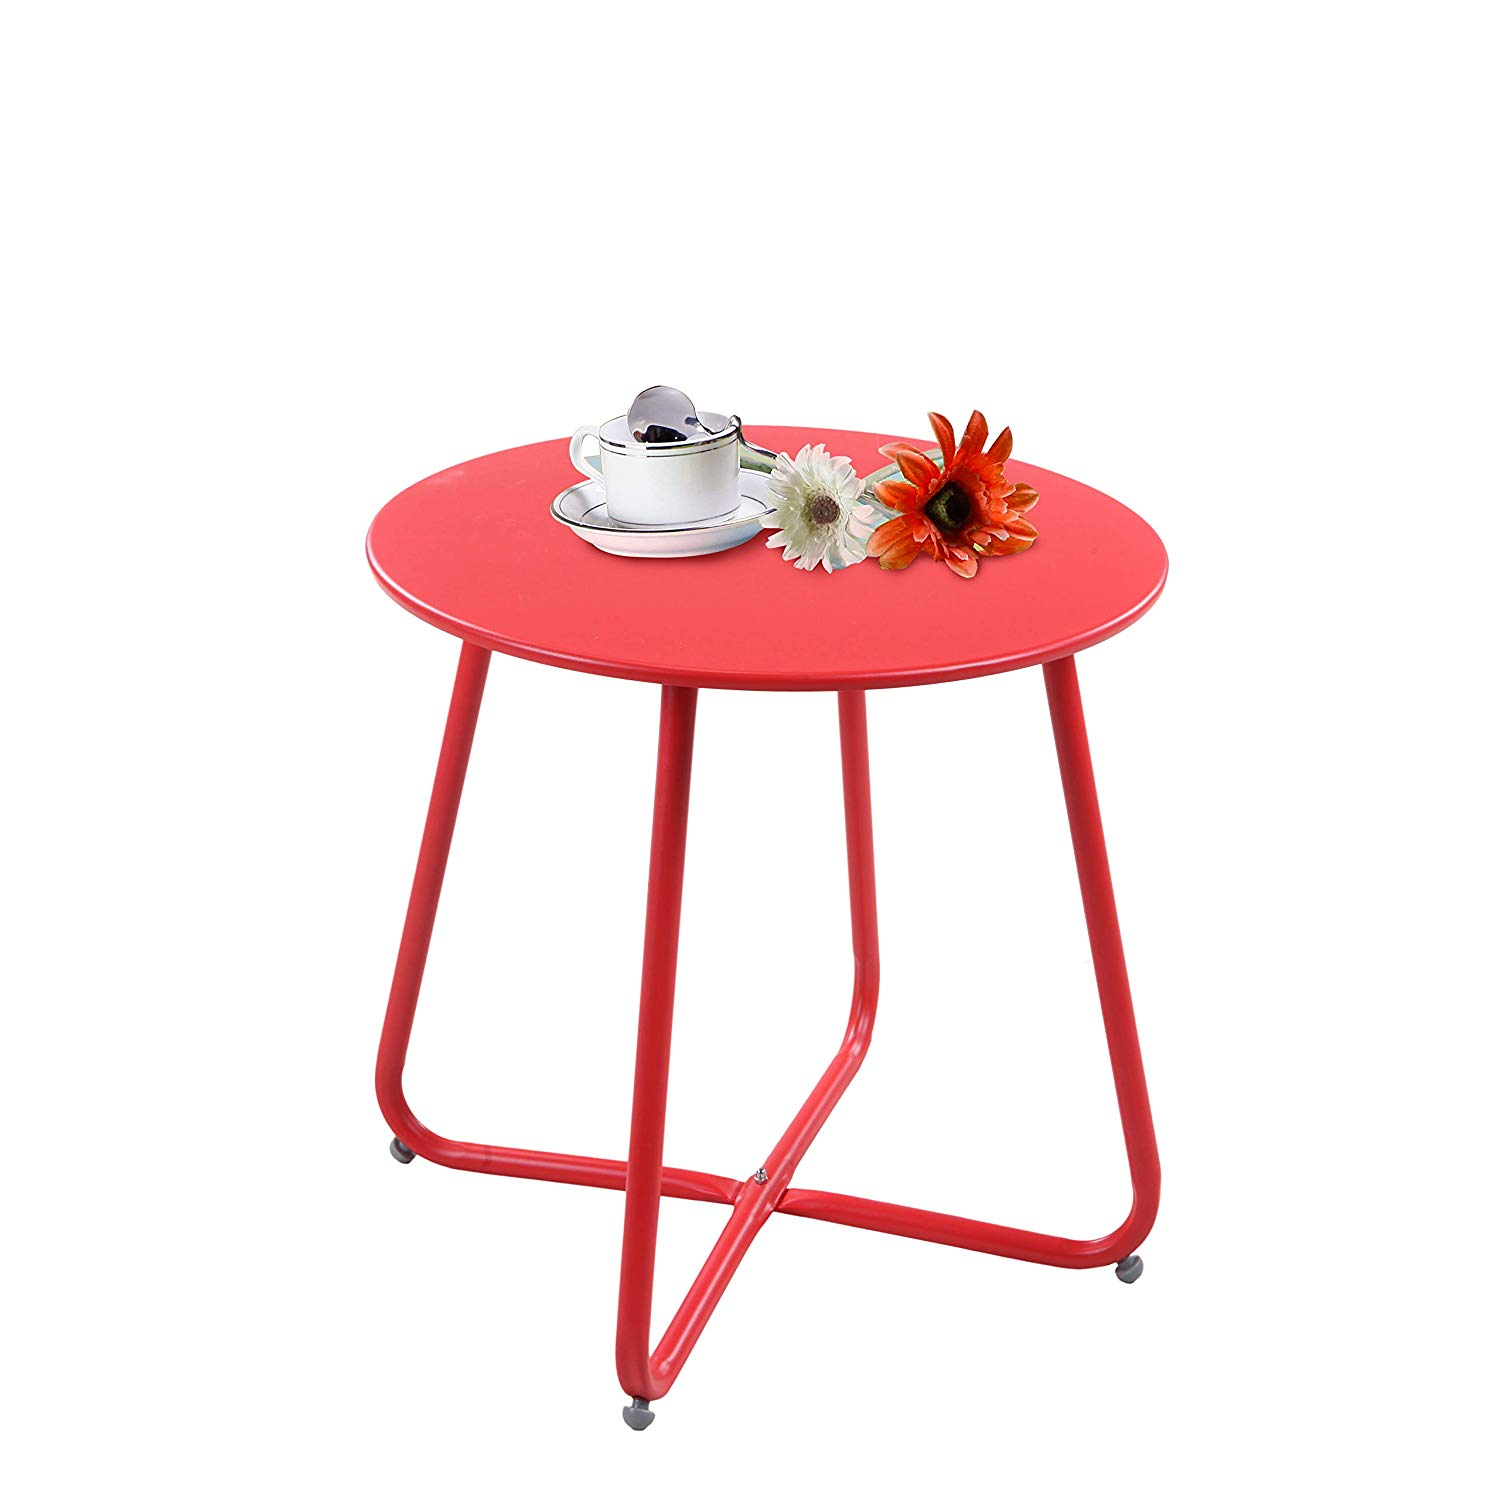 grand patio steel coffee table weather resistant outdoor side plastic small round end tables red garden cantilever umbrella accent chairs with arms steamer trunk shelves wooden